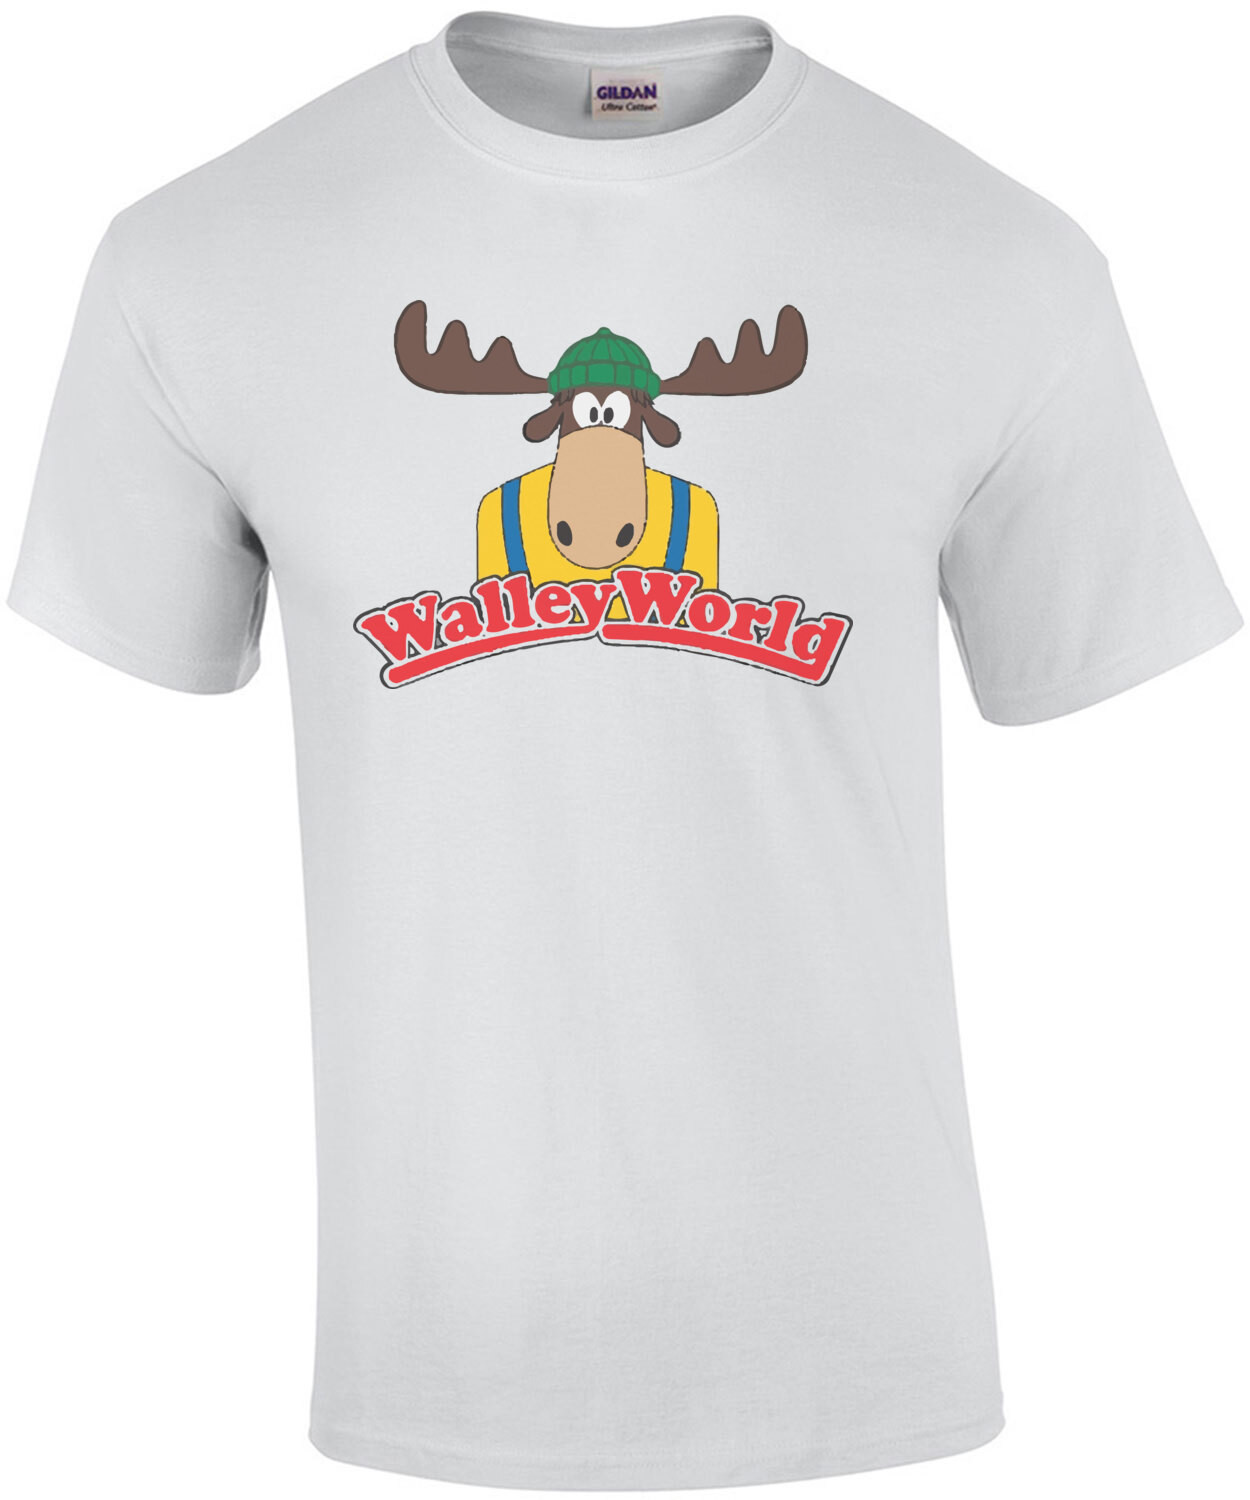 Walley World - Family Vacation - Griswold Wally World Vacation - 80's T-Shirt